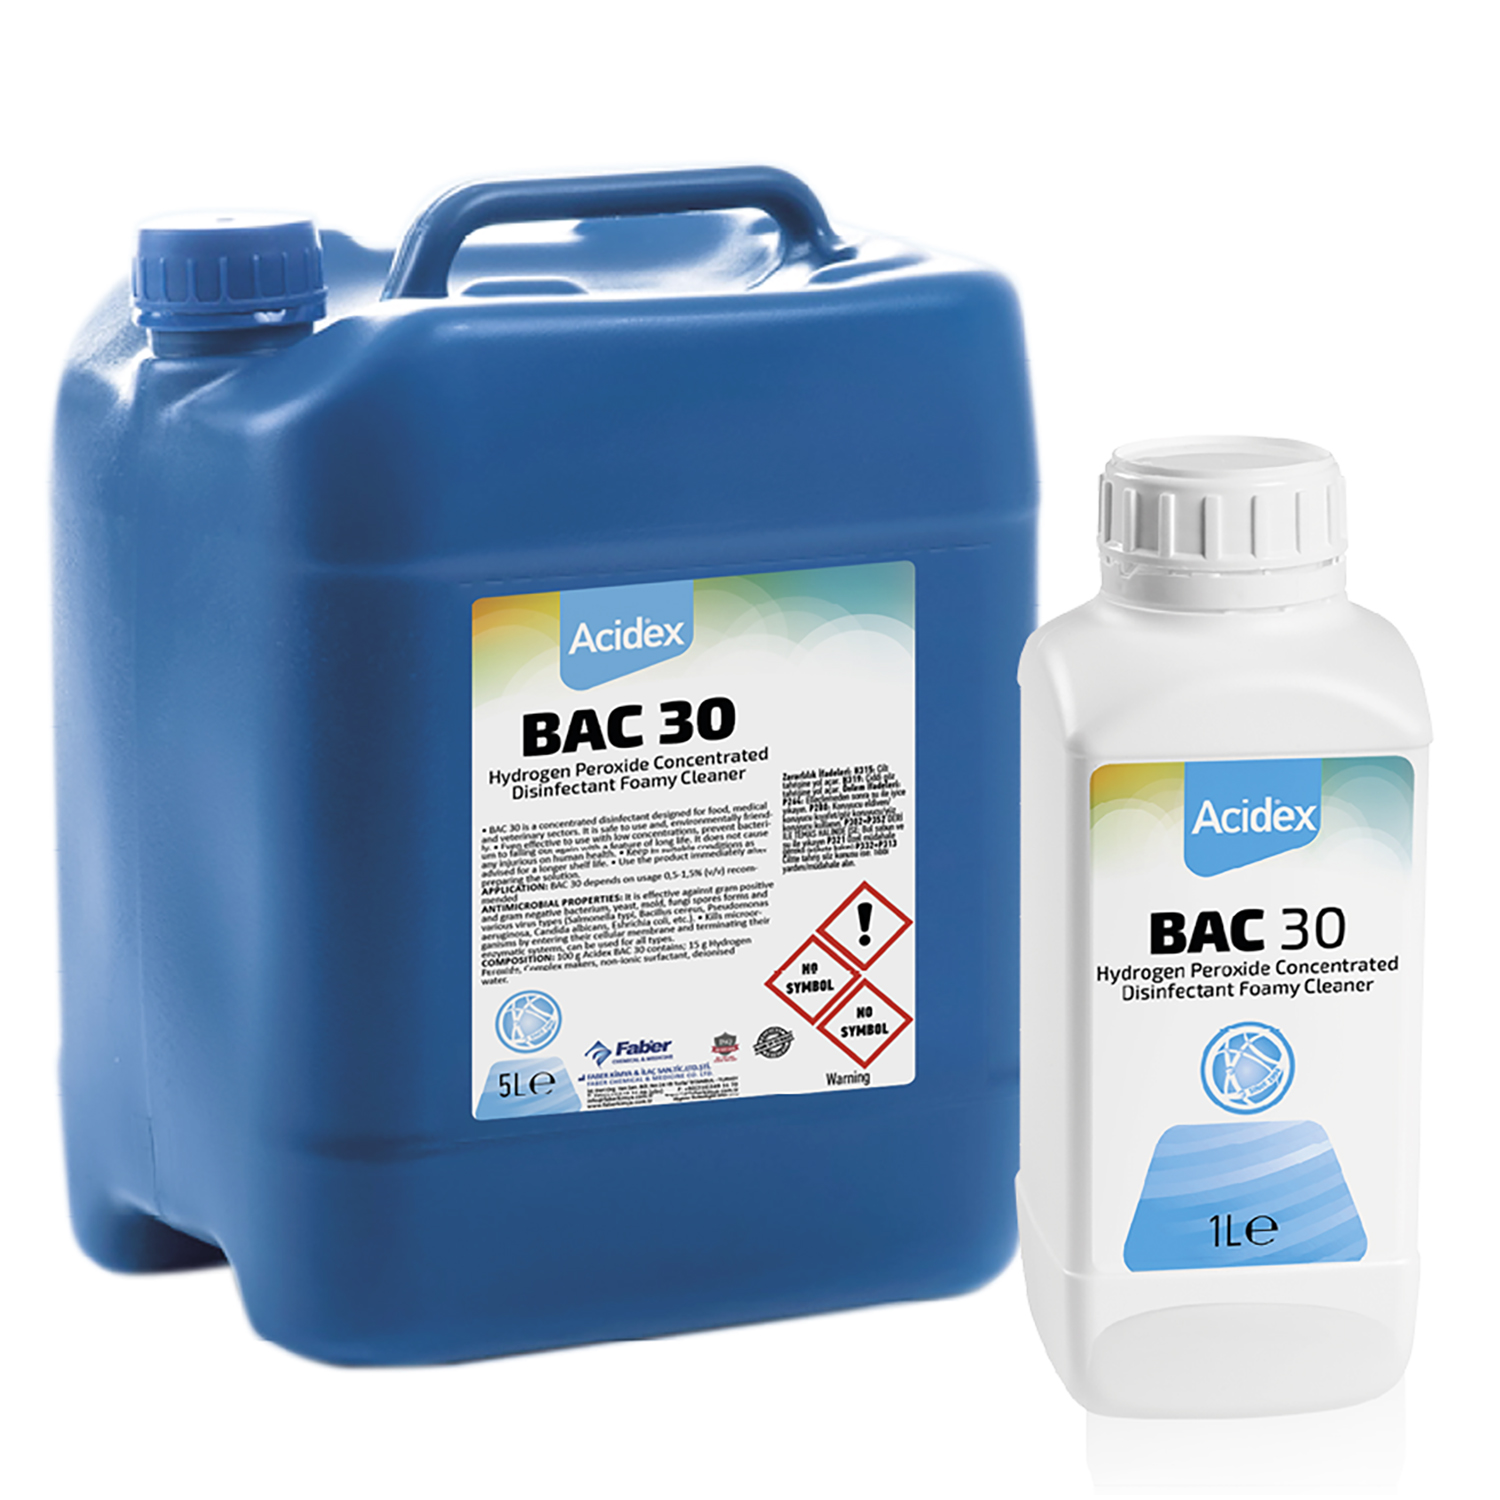 Acidex BAC 30